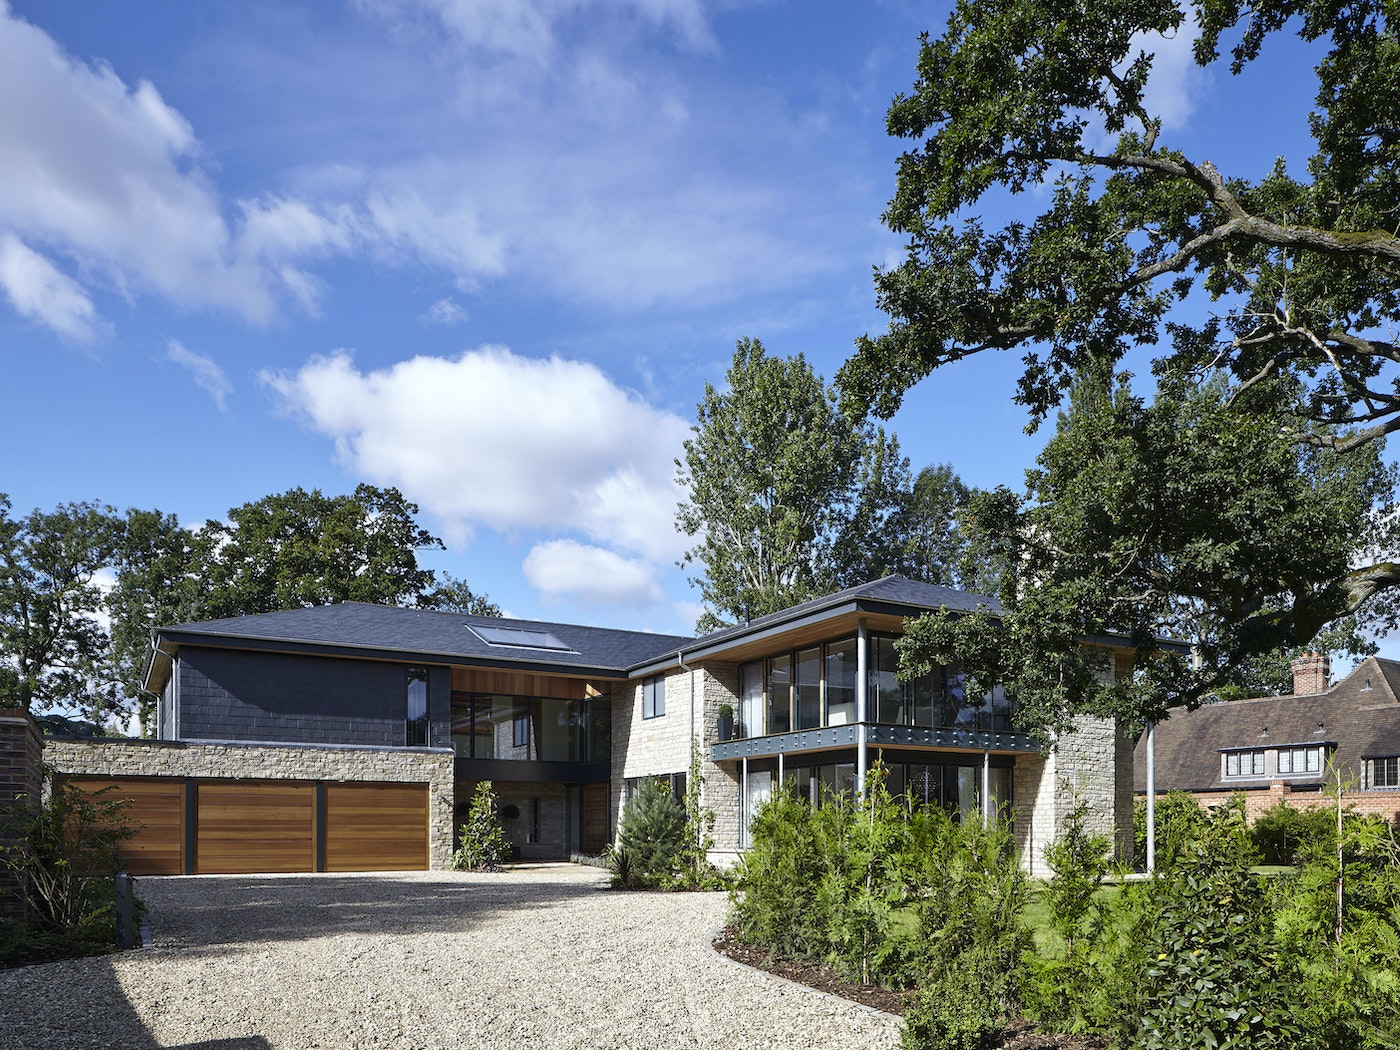 A beautiful construction with matching front & garage doors